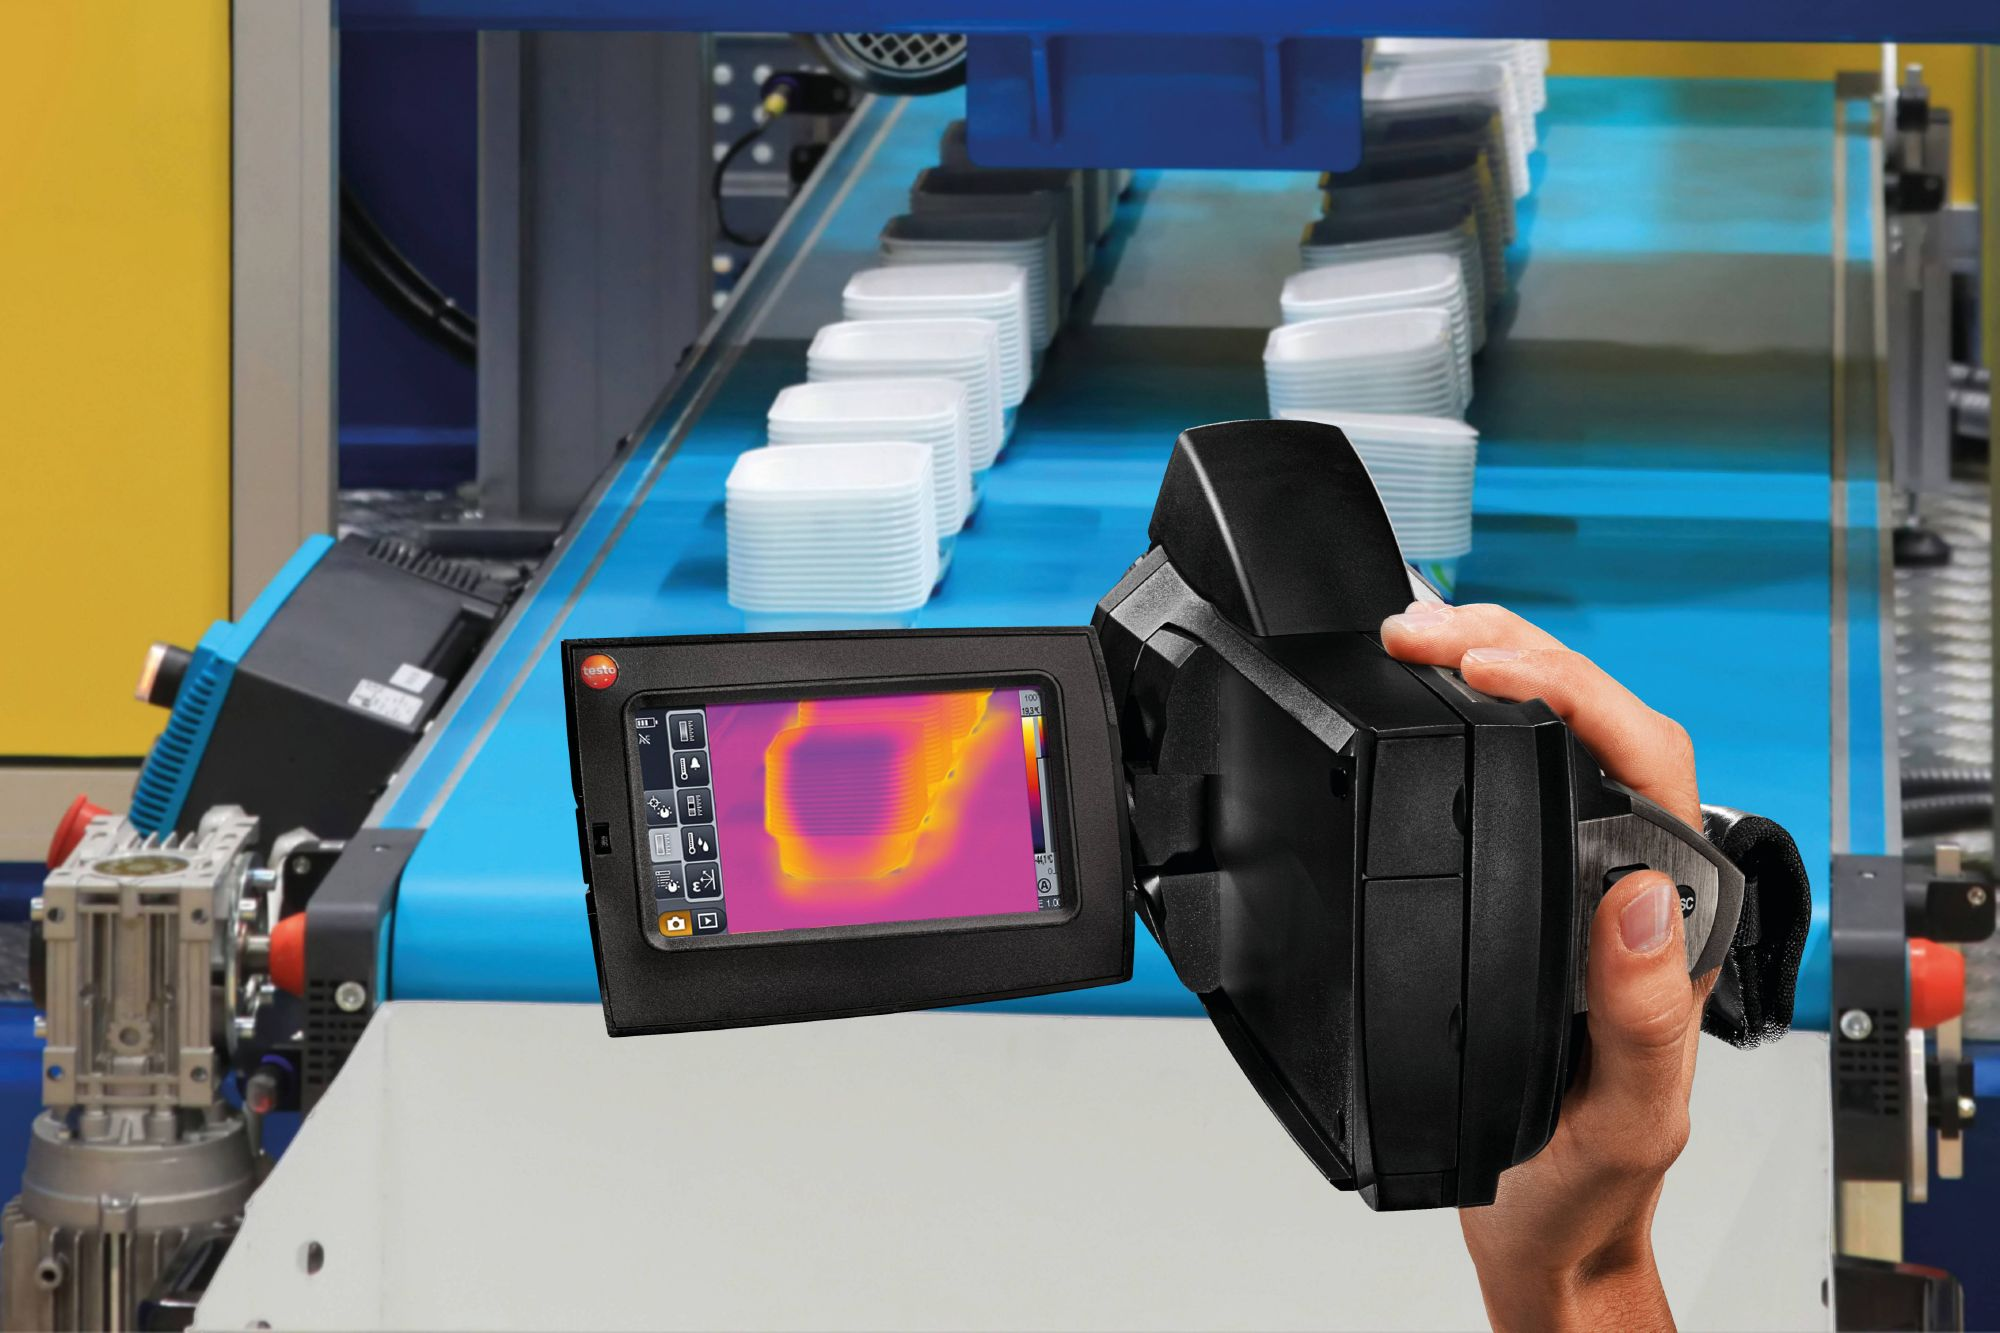 testo-885-application-thermography-004829.jpg